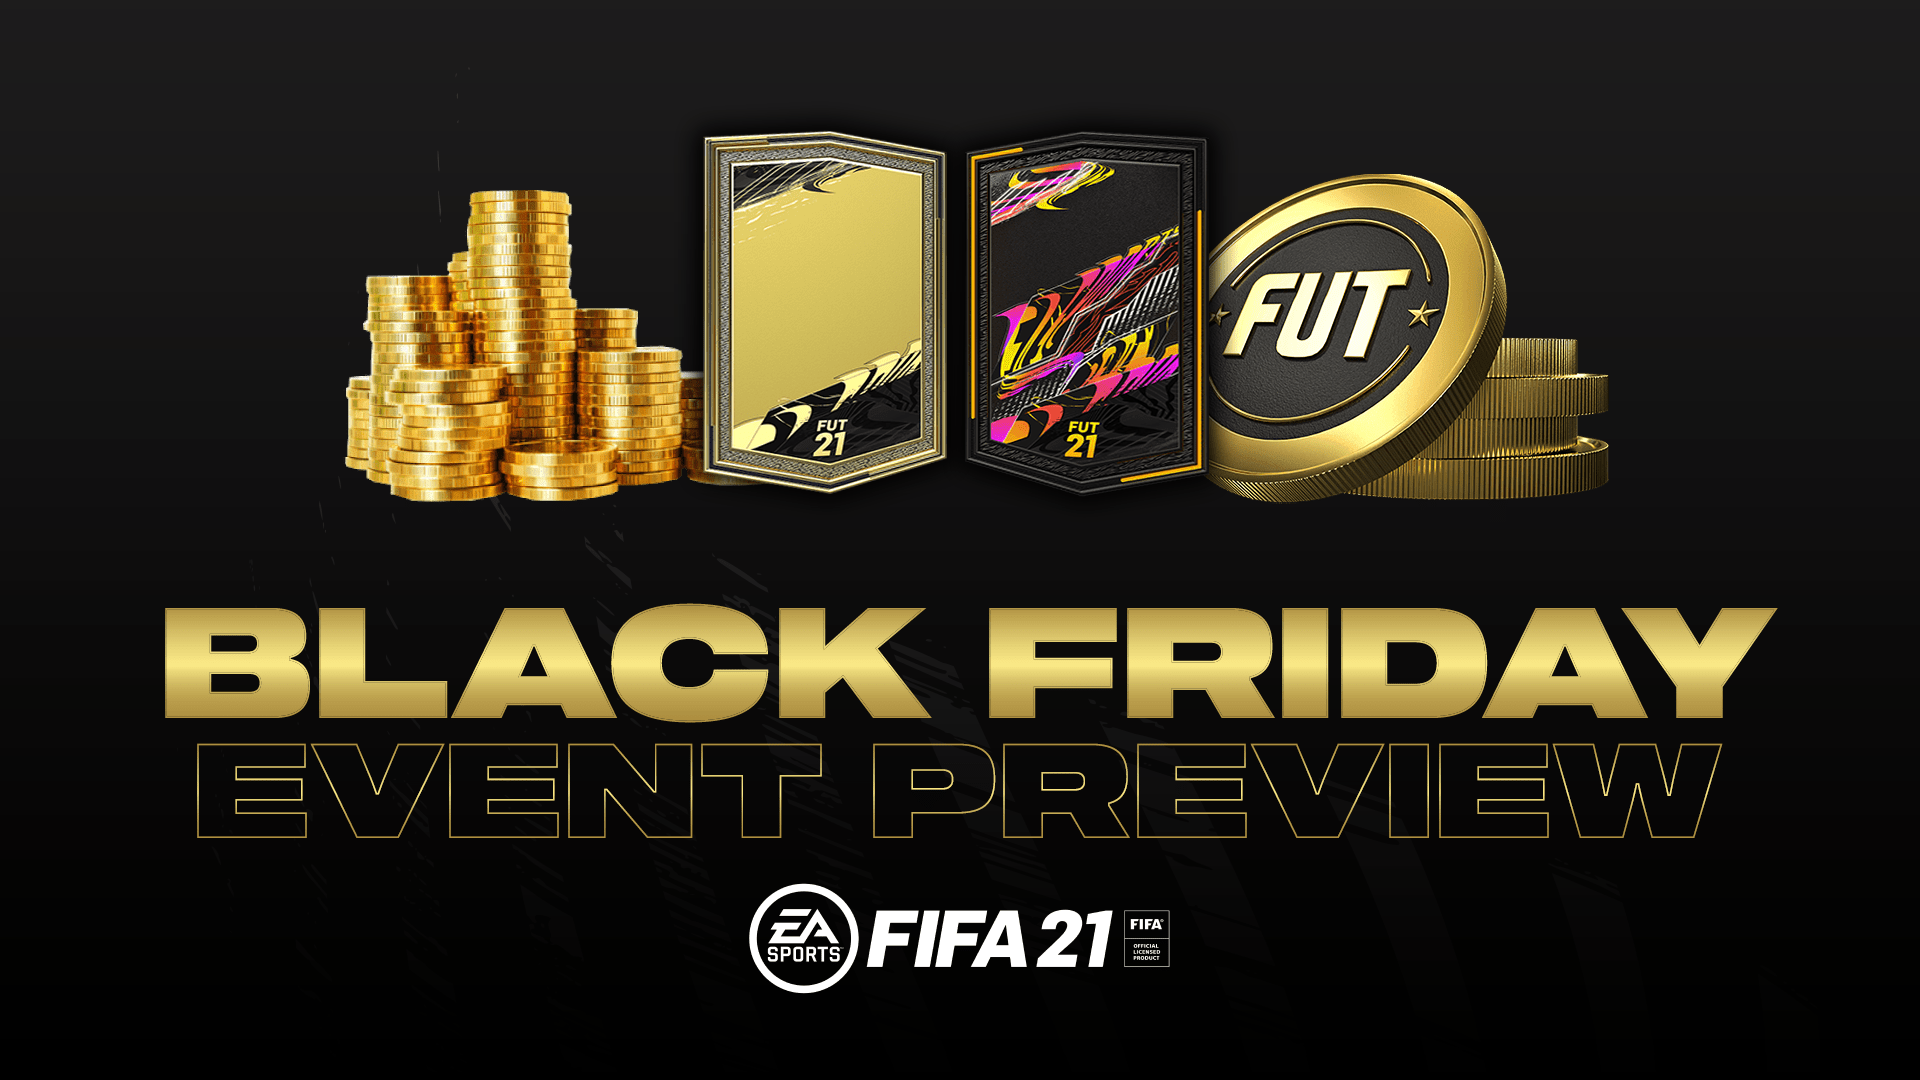 Fifa 21 Pre Black Friday Promo Live Release Date Predictions Deals Packs Best Of Totw Expected